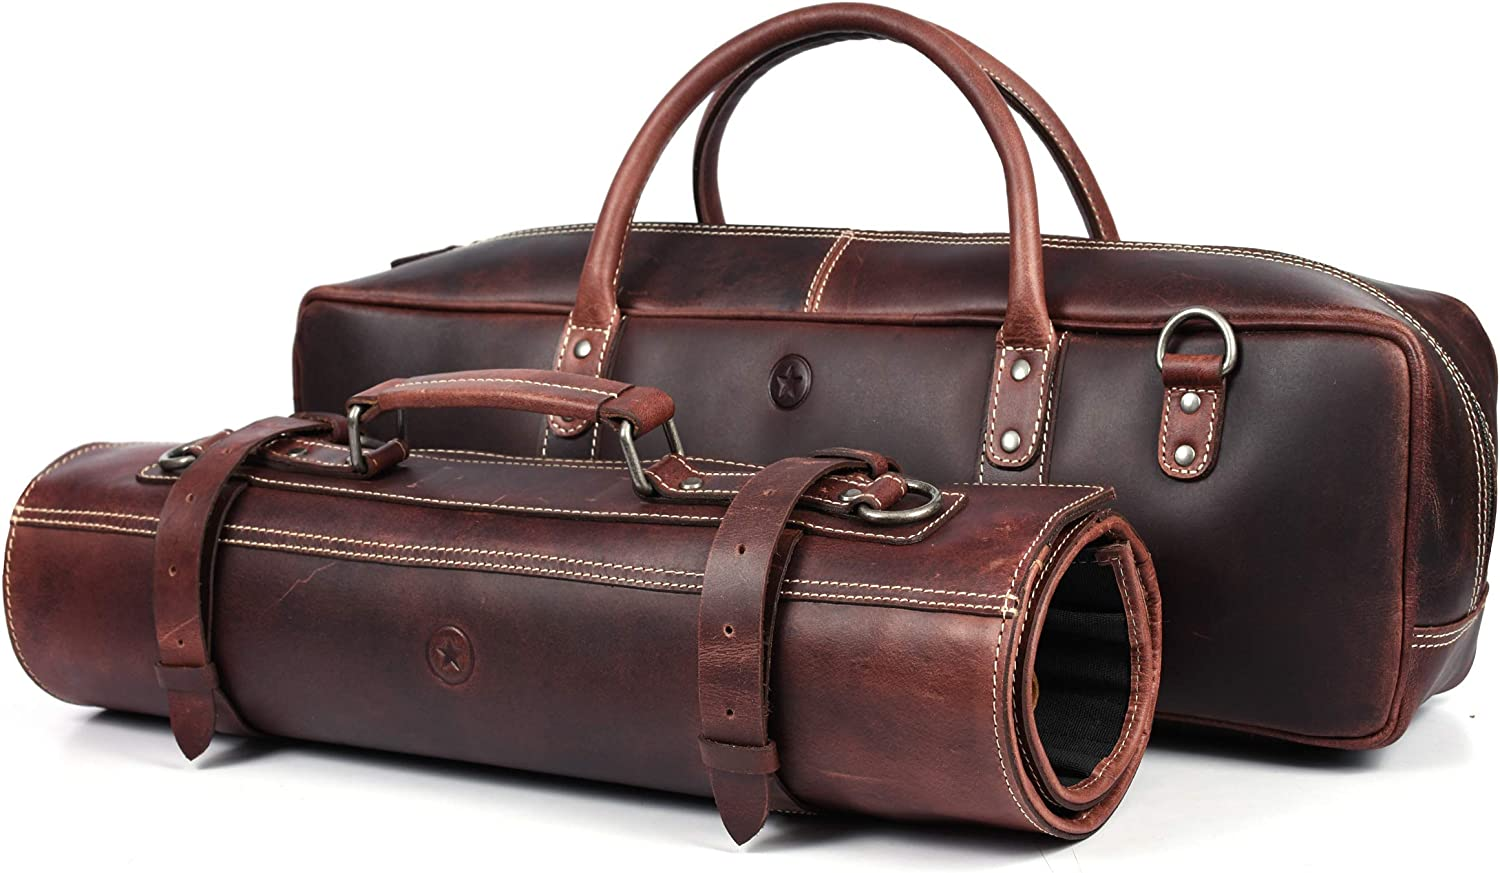 Leather Knife Roll Storage Bag, Elastic and Expandable 10 Pockets, Adjustable/Detachable Shoulder Strap, Travel-Friendly Chef Knife Case (Walnut (with bag), Leather)